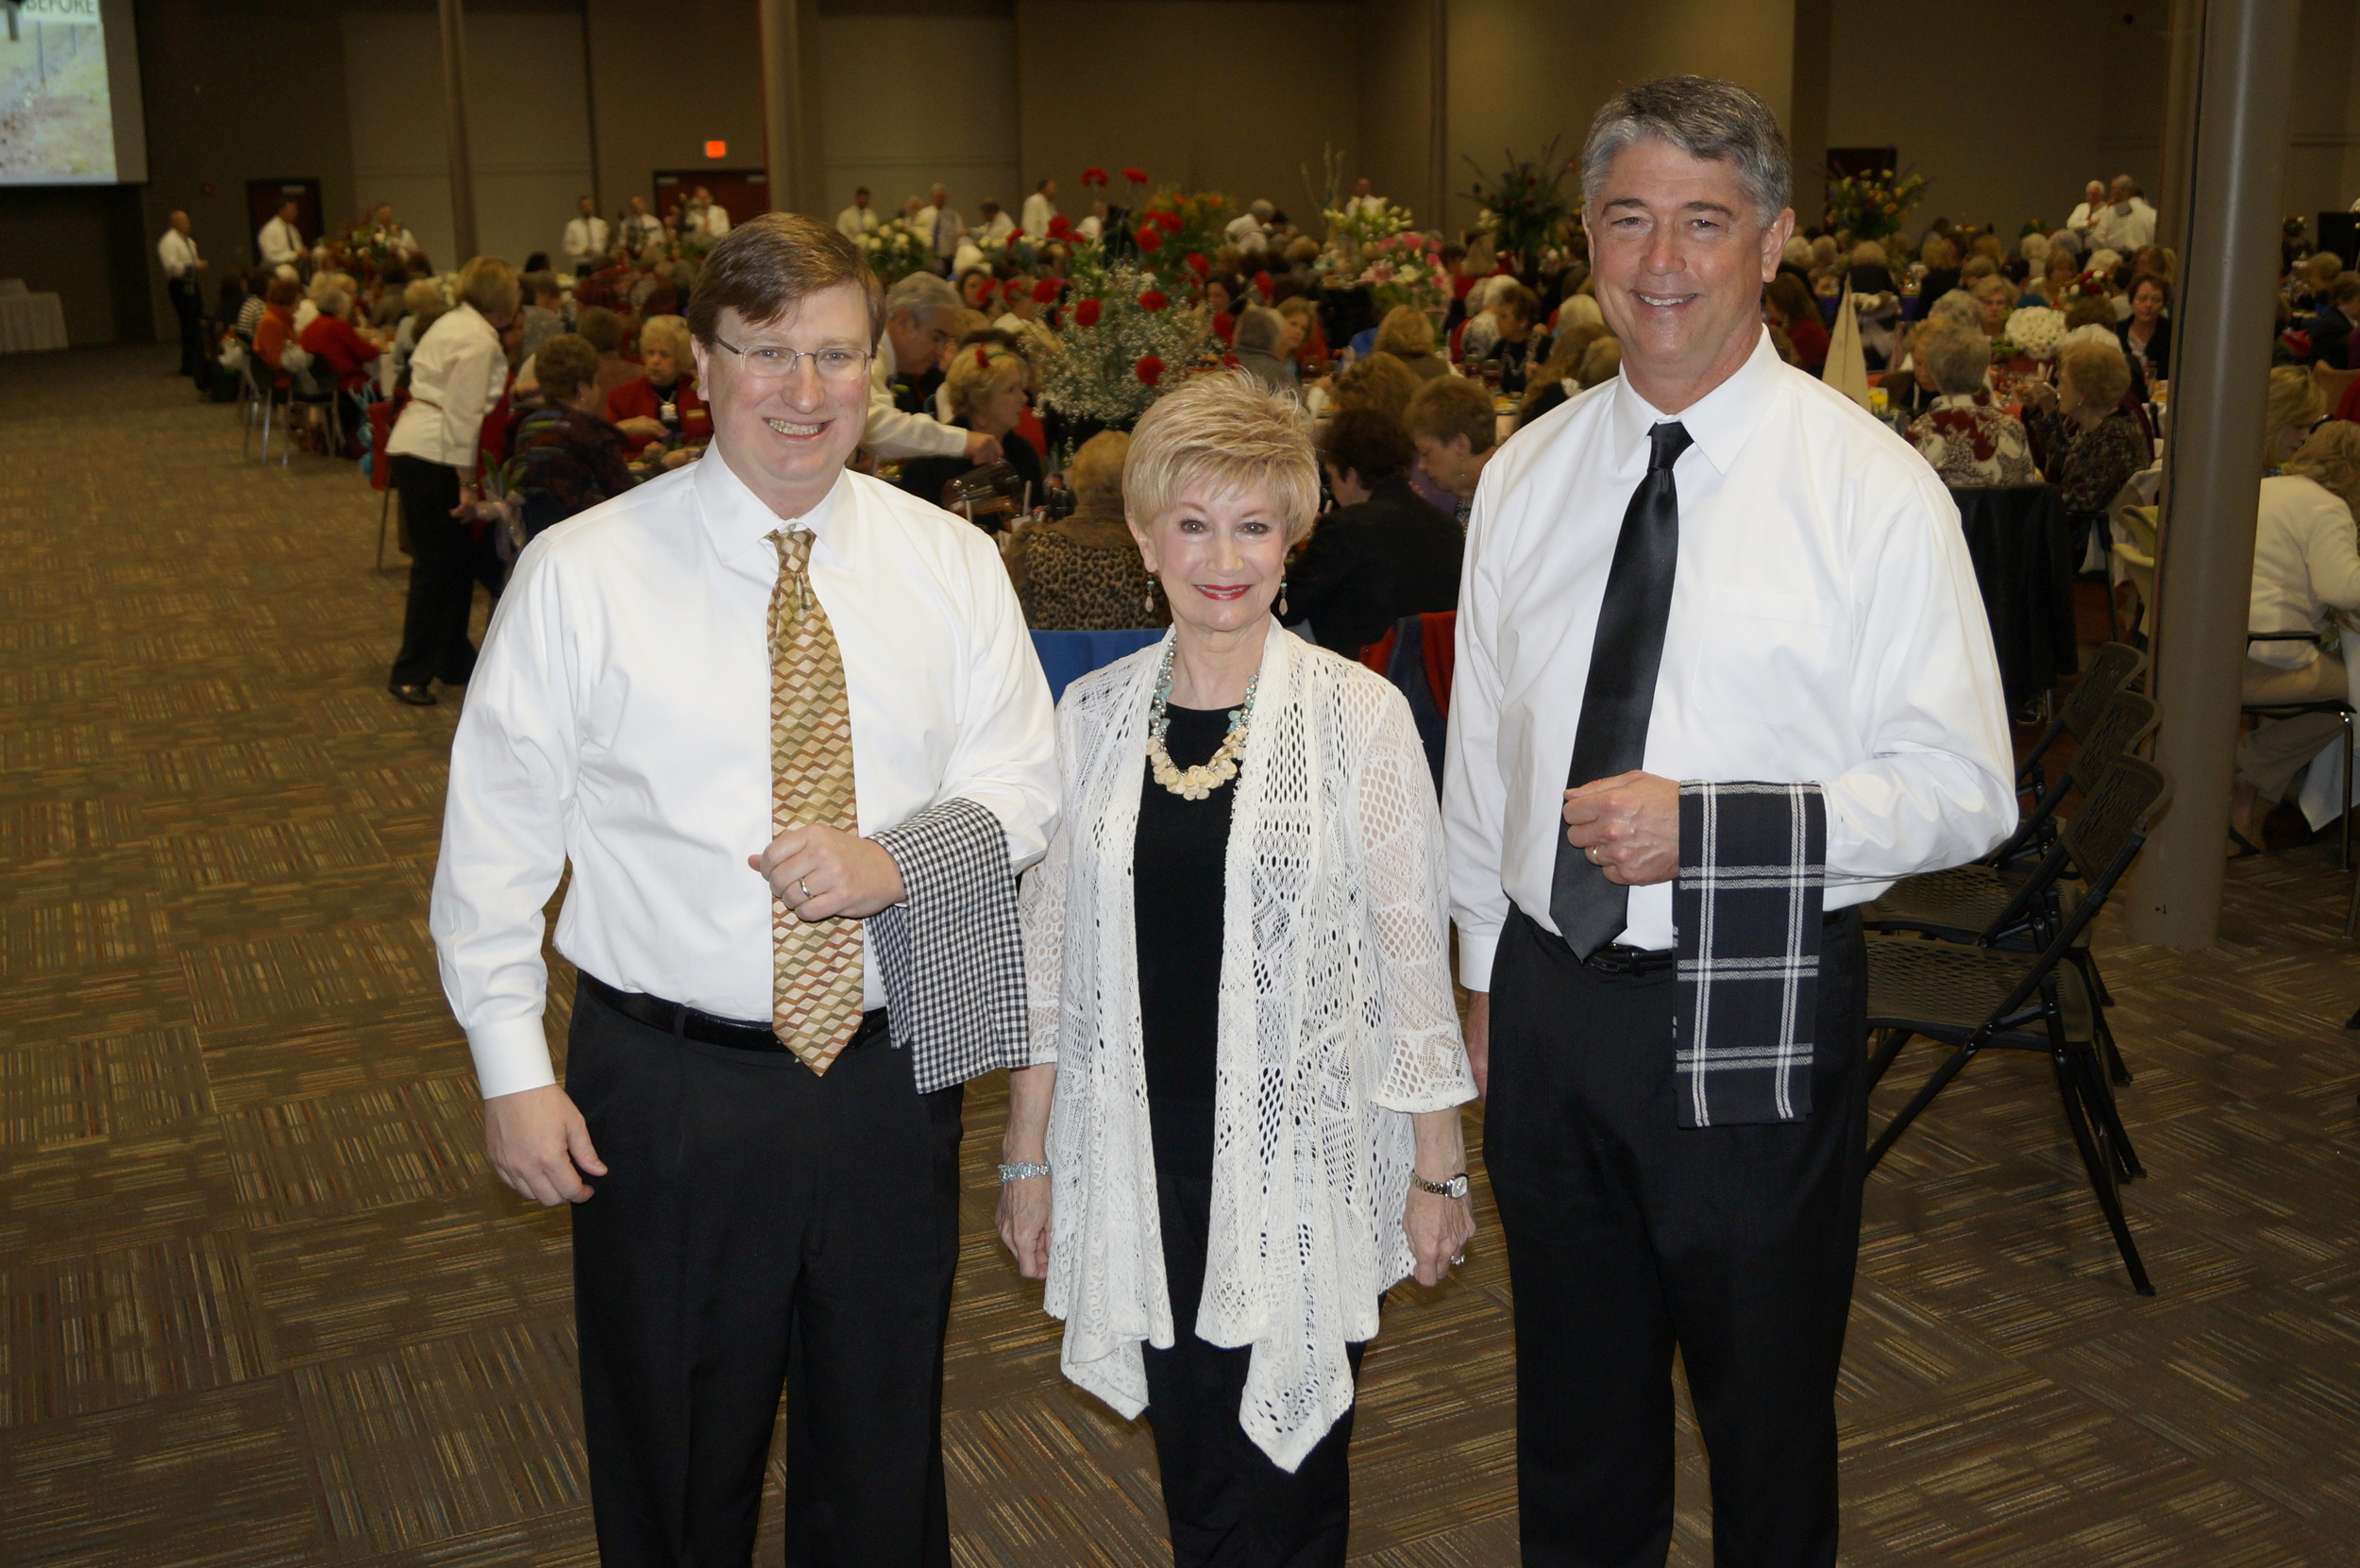 """Brandon Garden Club (BGC) had 44 """"celebrity"""" servers to wait on the 320 guestsat40uniquelydecorated  tables  . Servers pictured (l to r): Lt. Governor Tate Reeves, BGC President Charla Jordan, and Brandon Mayor Butch Lee."""